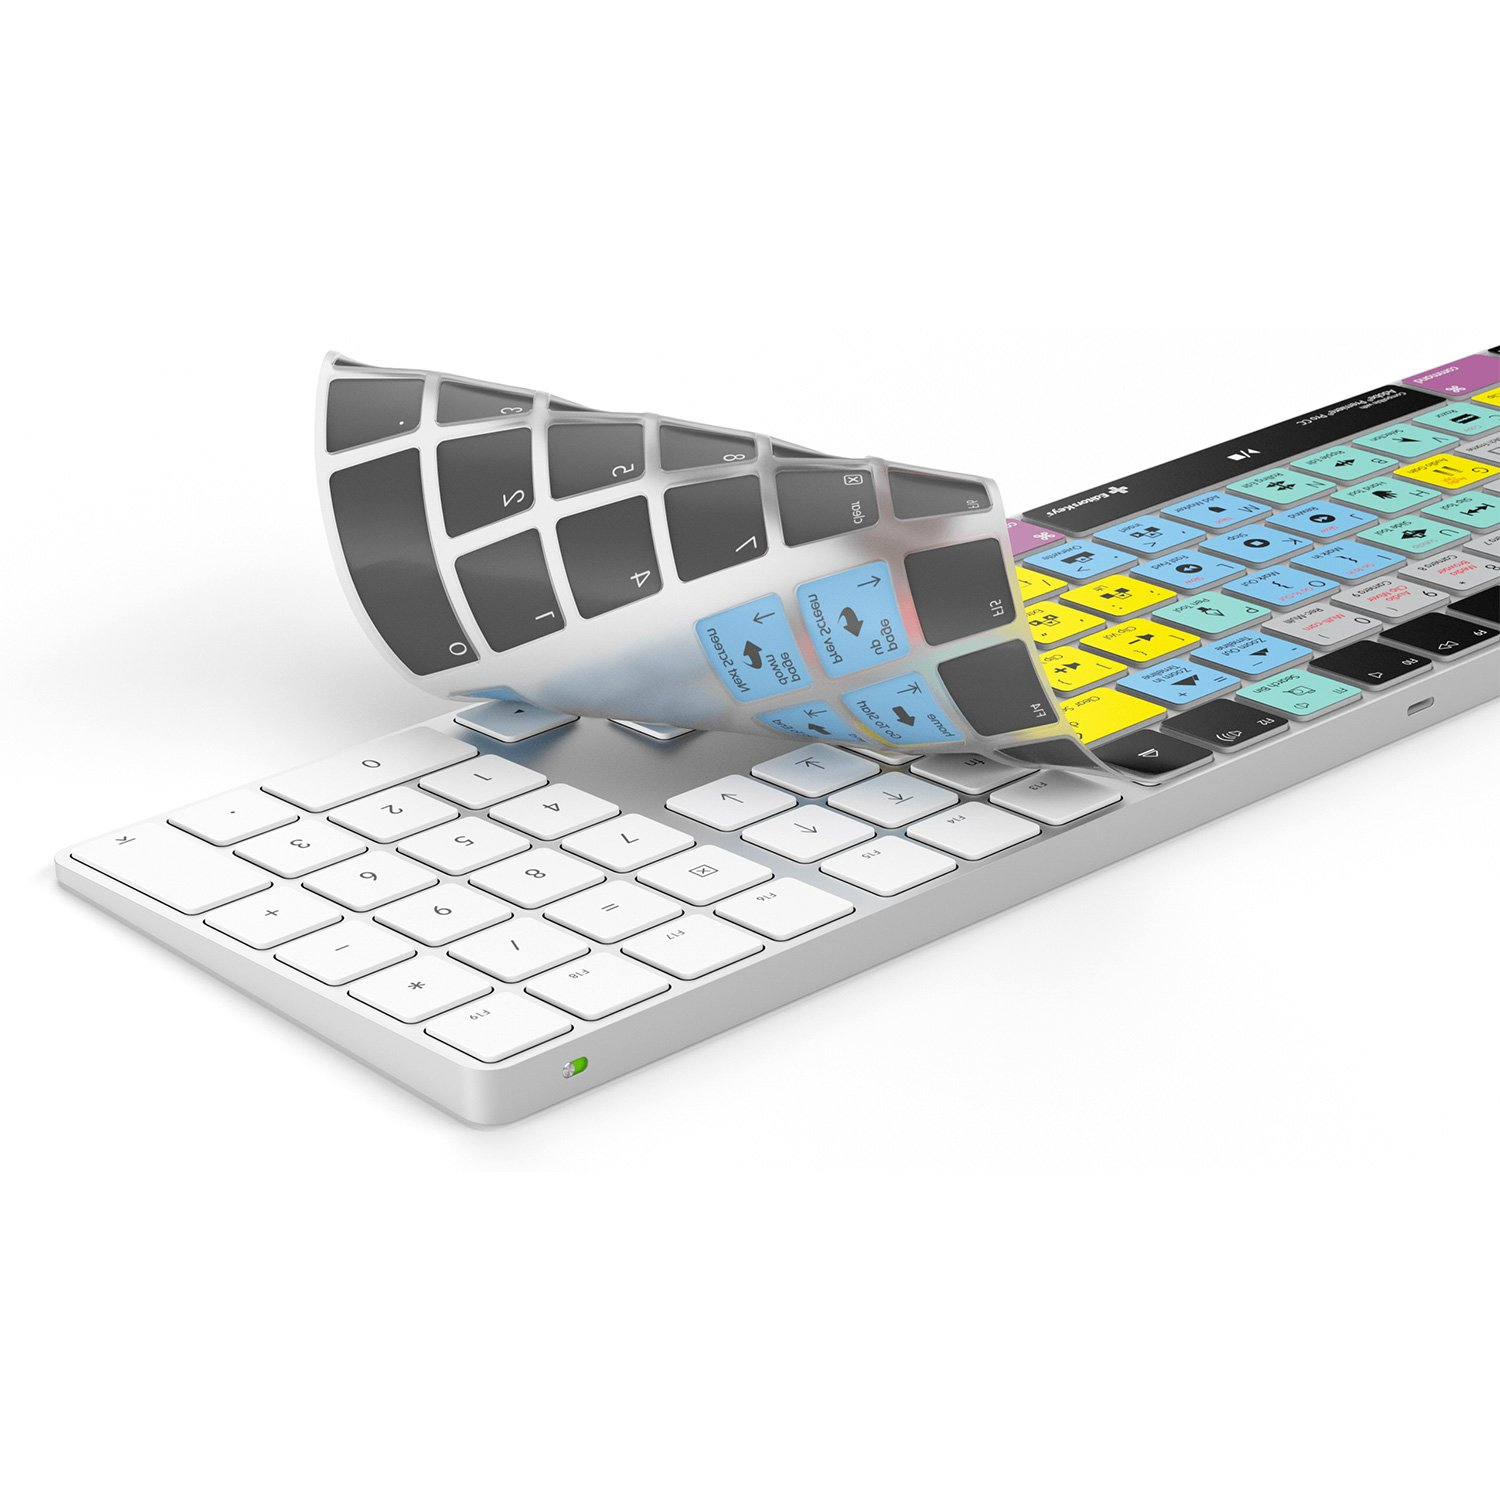 Amazon.com: Adobe Premiere Pro Keyboard Cover for Apple Magic Keyboard | Fits Wireless Magic Keyboard with Numeric Pad: Computers & Accessories